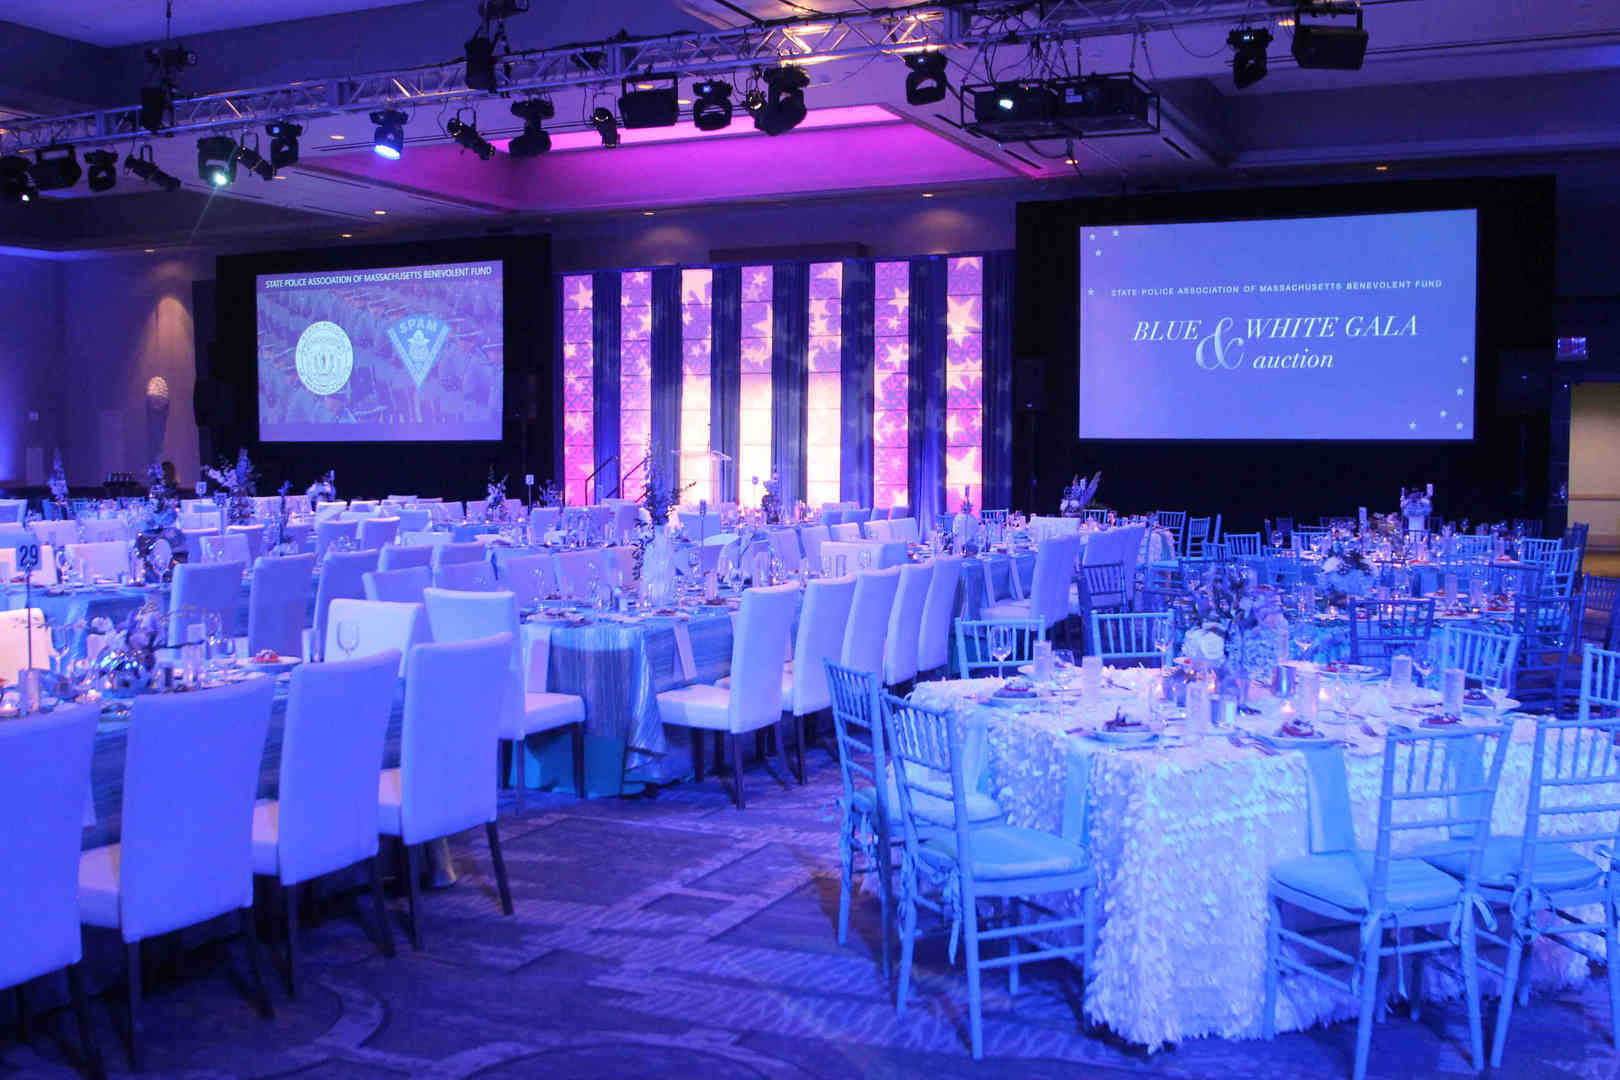 Projecotor screens at an event in London